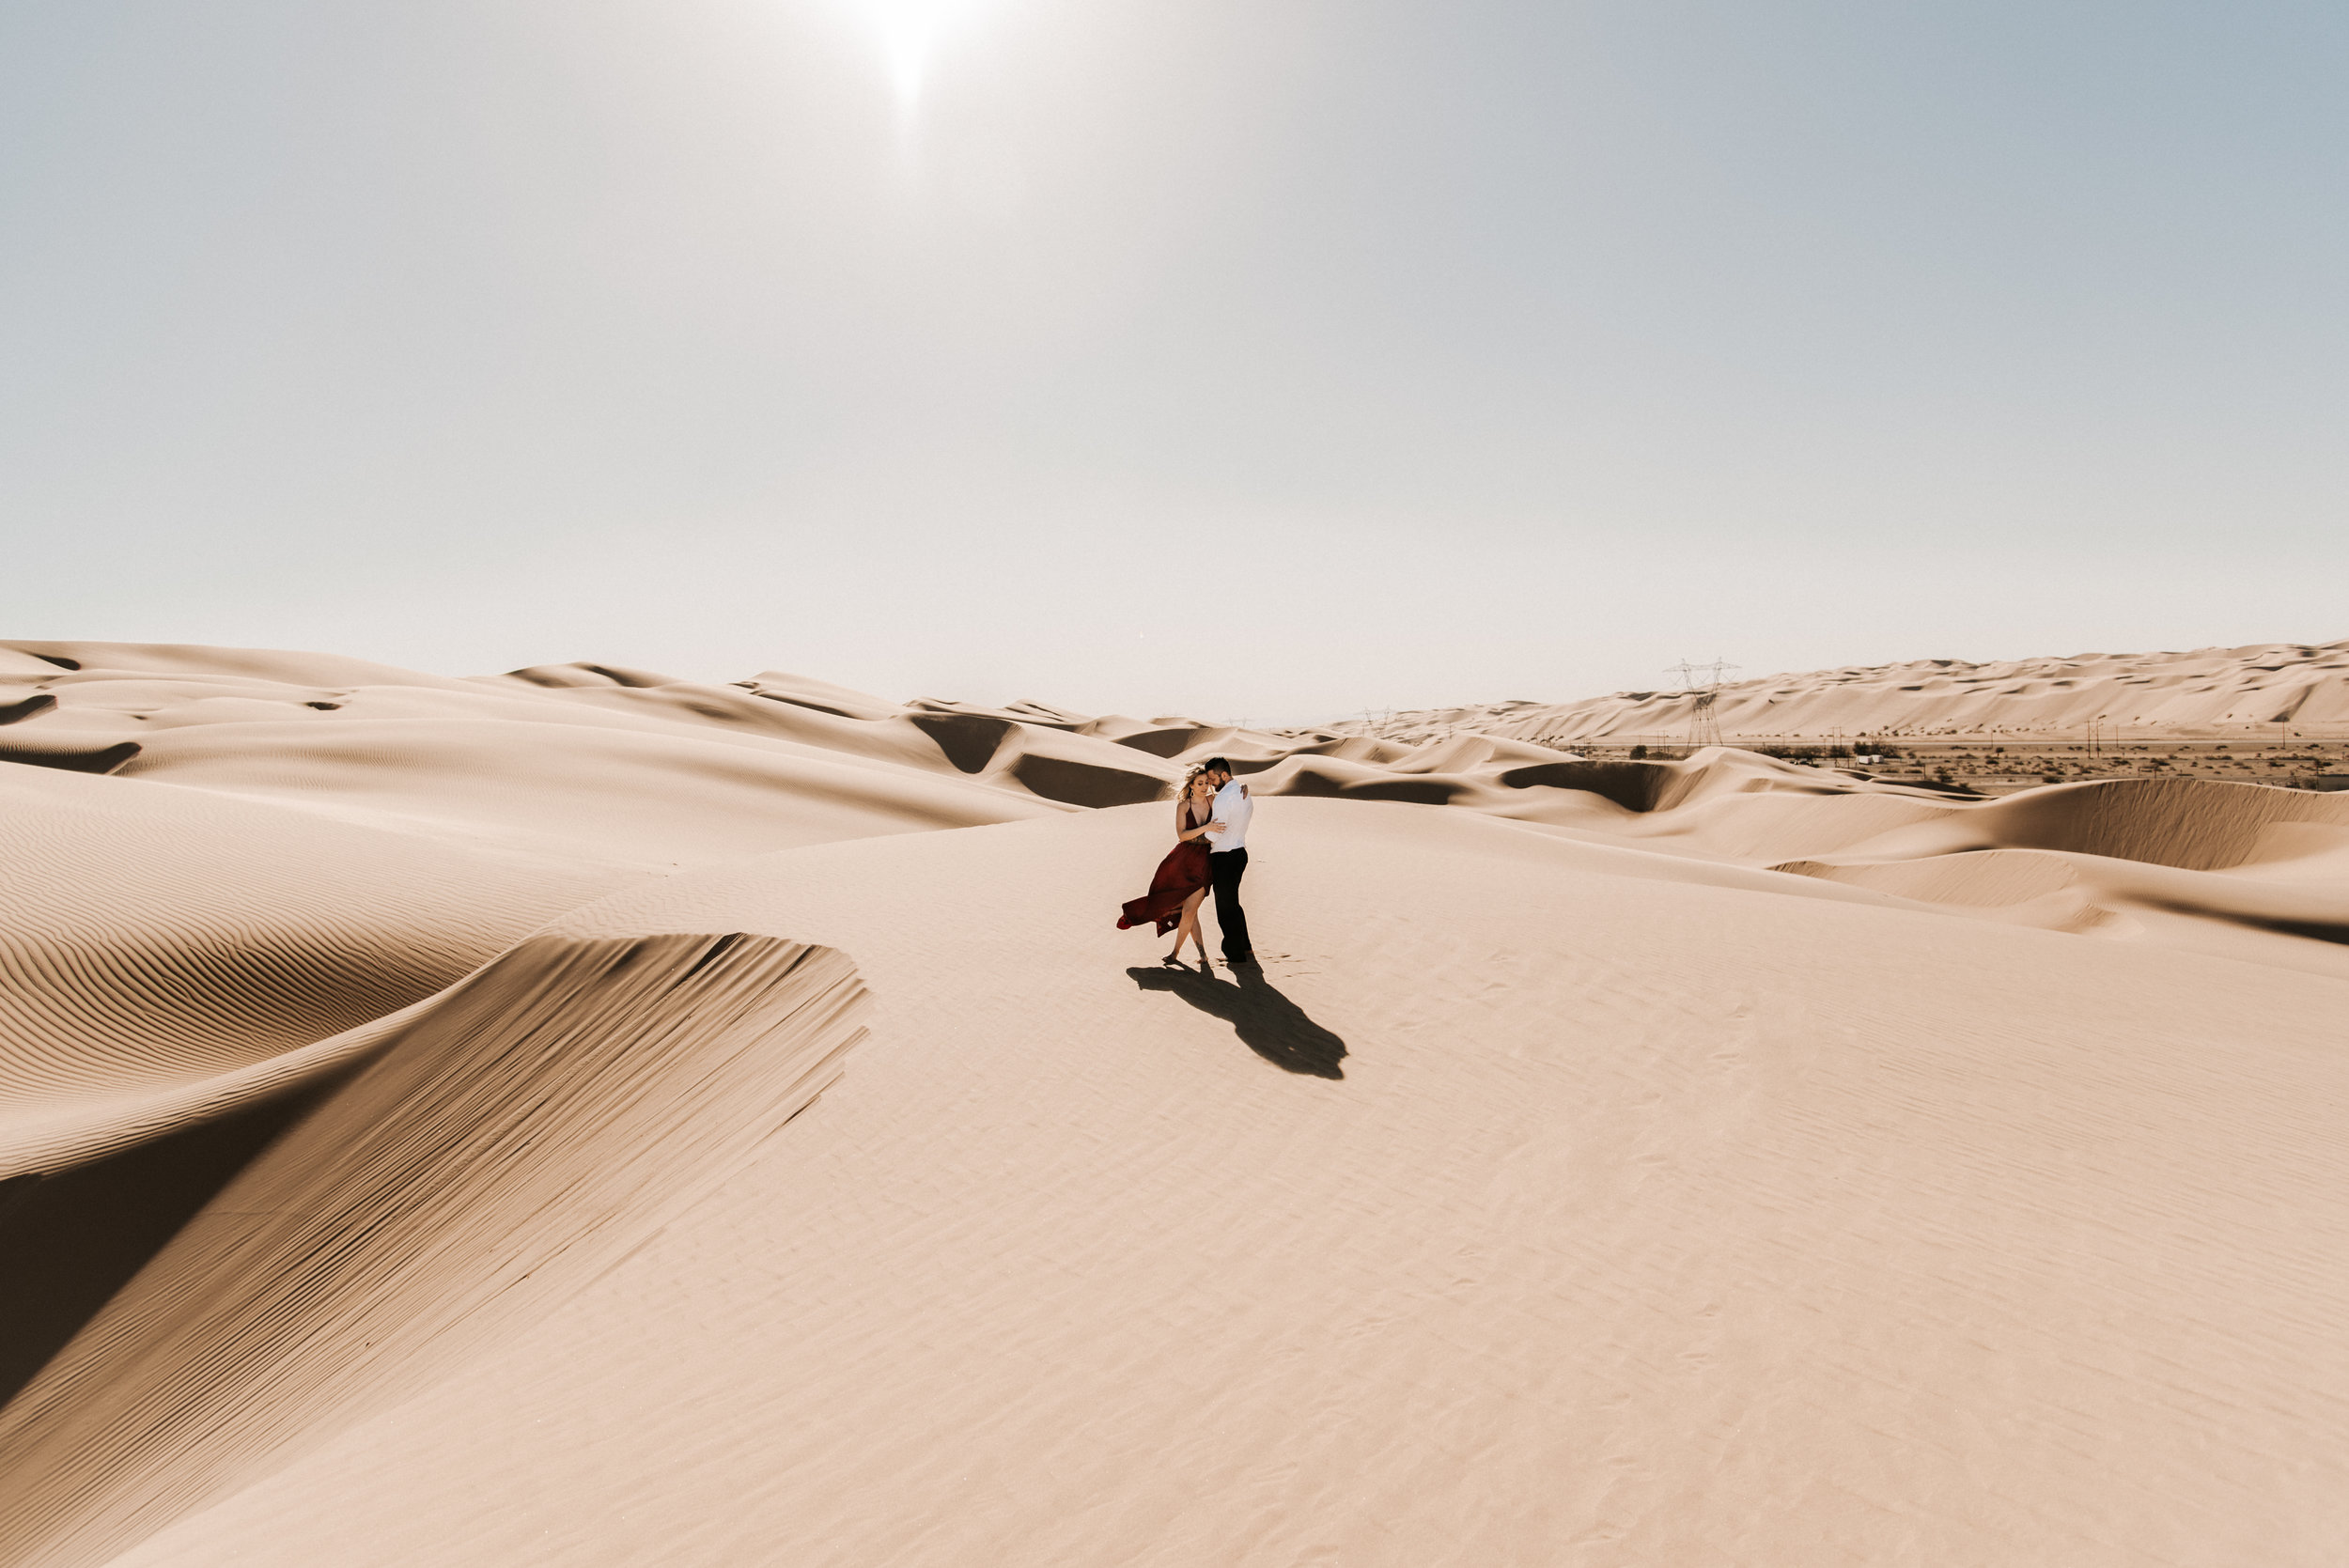 SamErica Studios - Modern San Diego Engagement Photographer - Adventure Engagement Session in Glamis Sand Dunes California-15.jpg